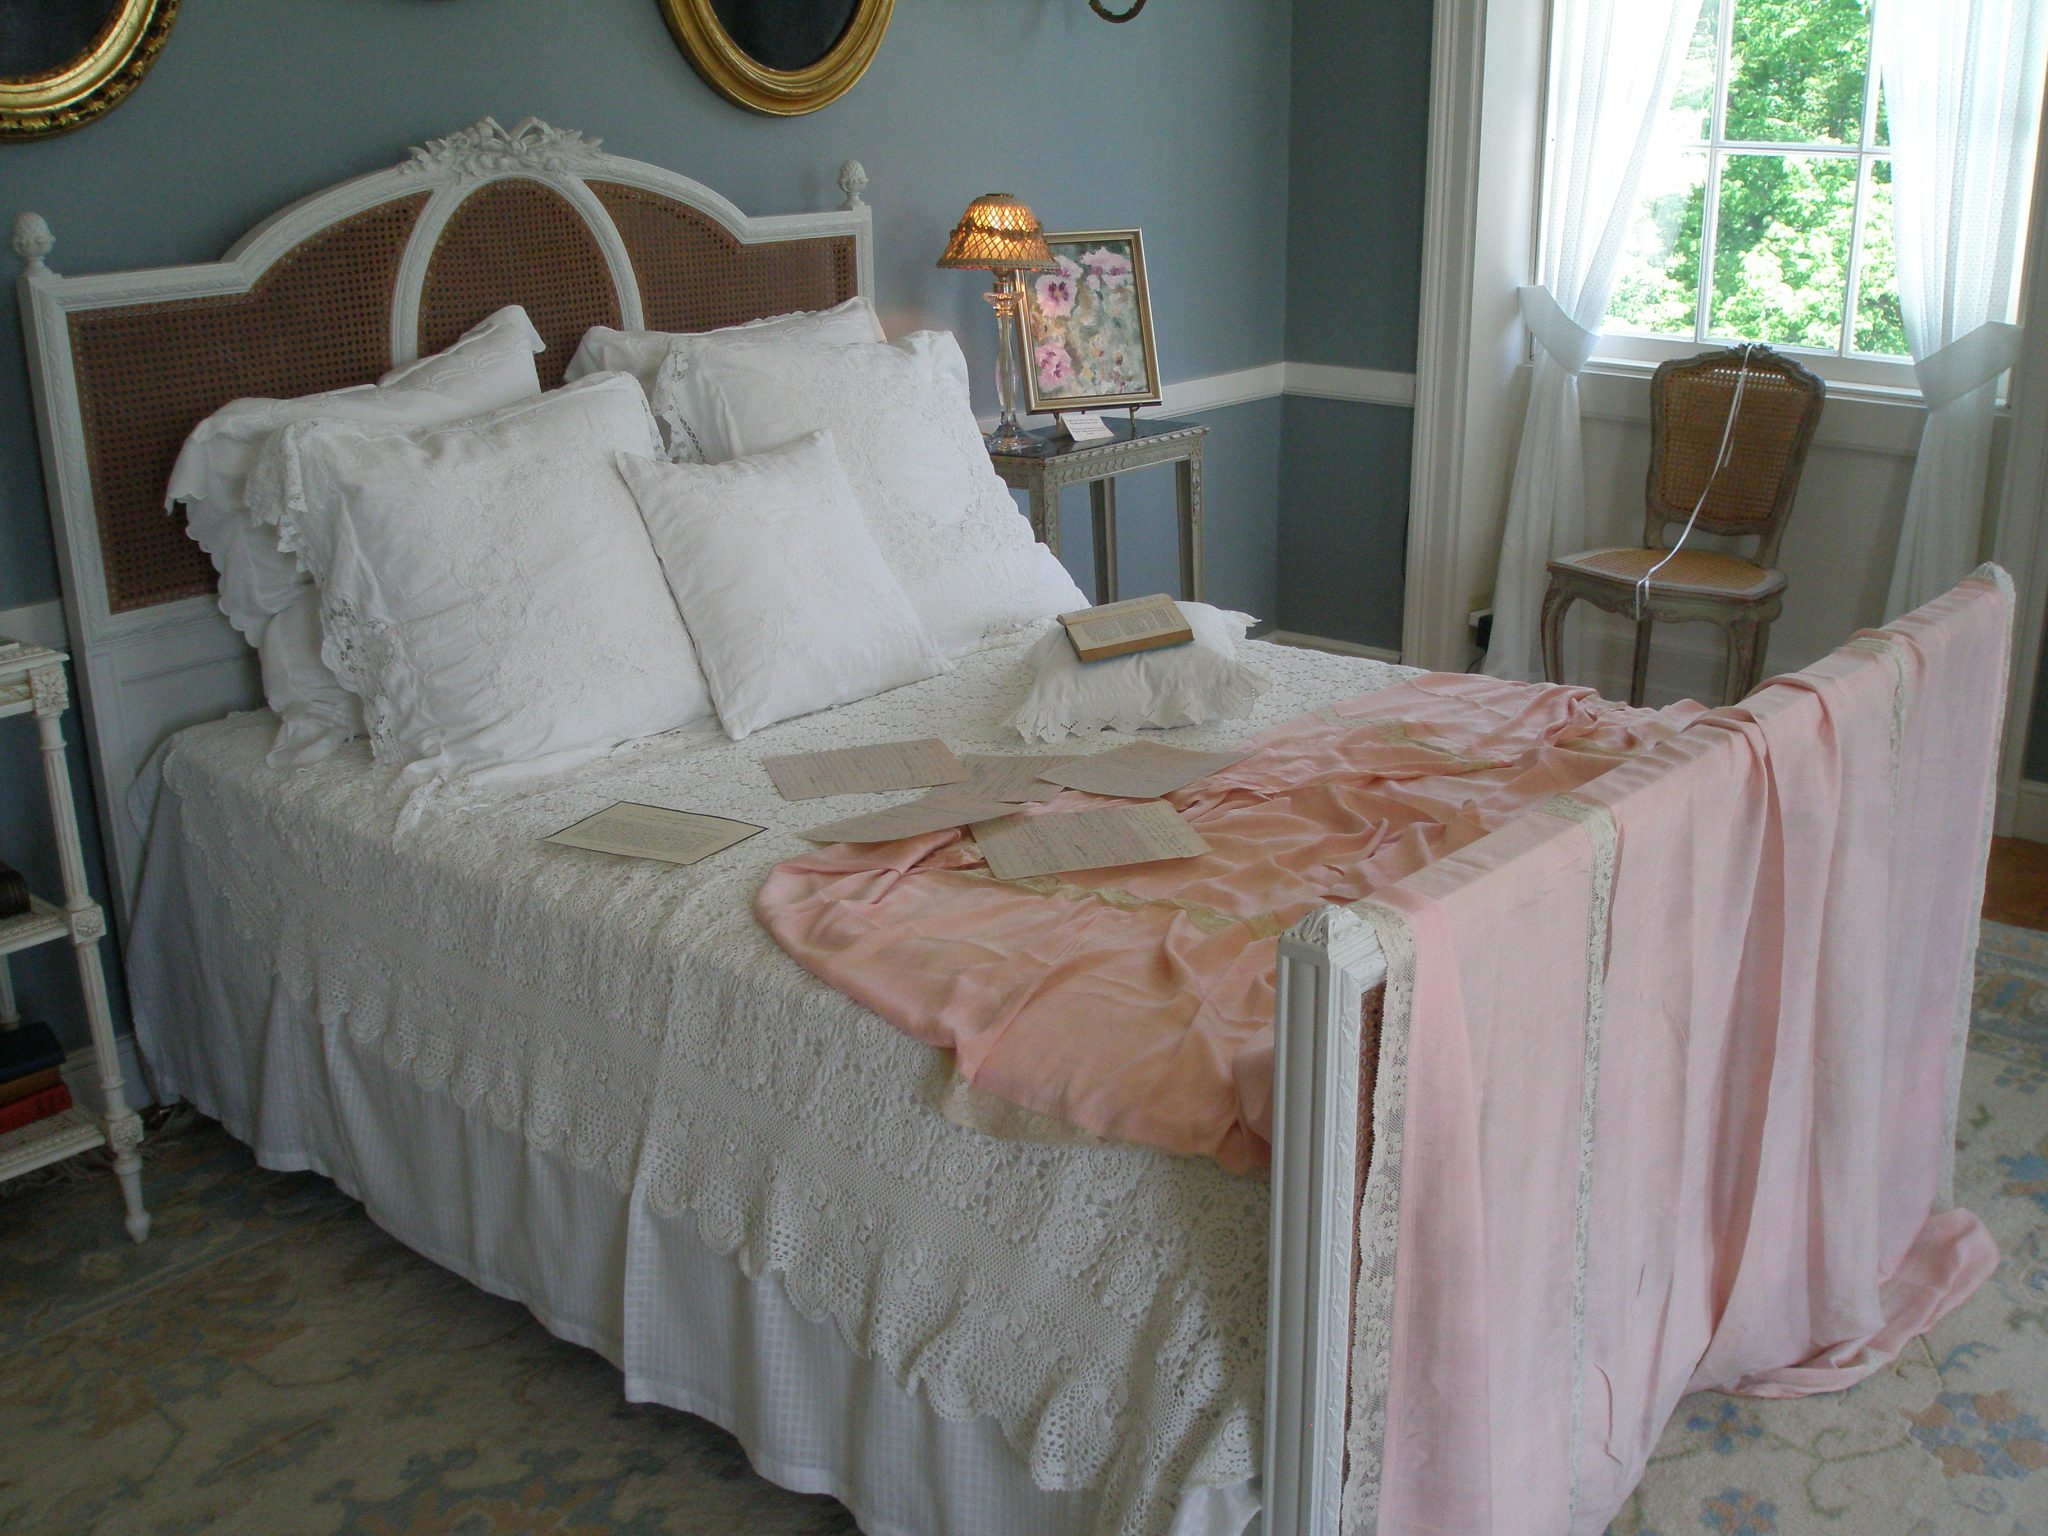 Edith Wharton's Bed (imagined by today's interior designers)...which seems almost to be awaiting her.